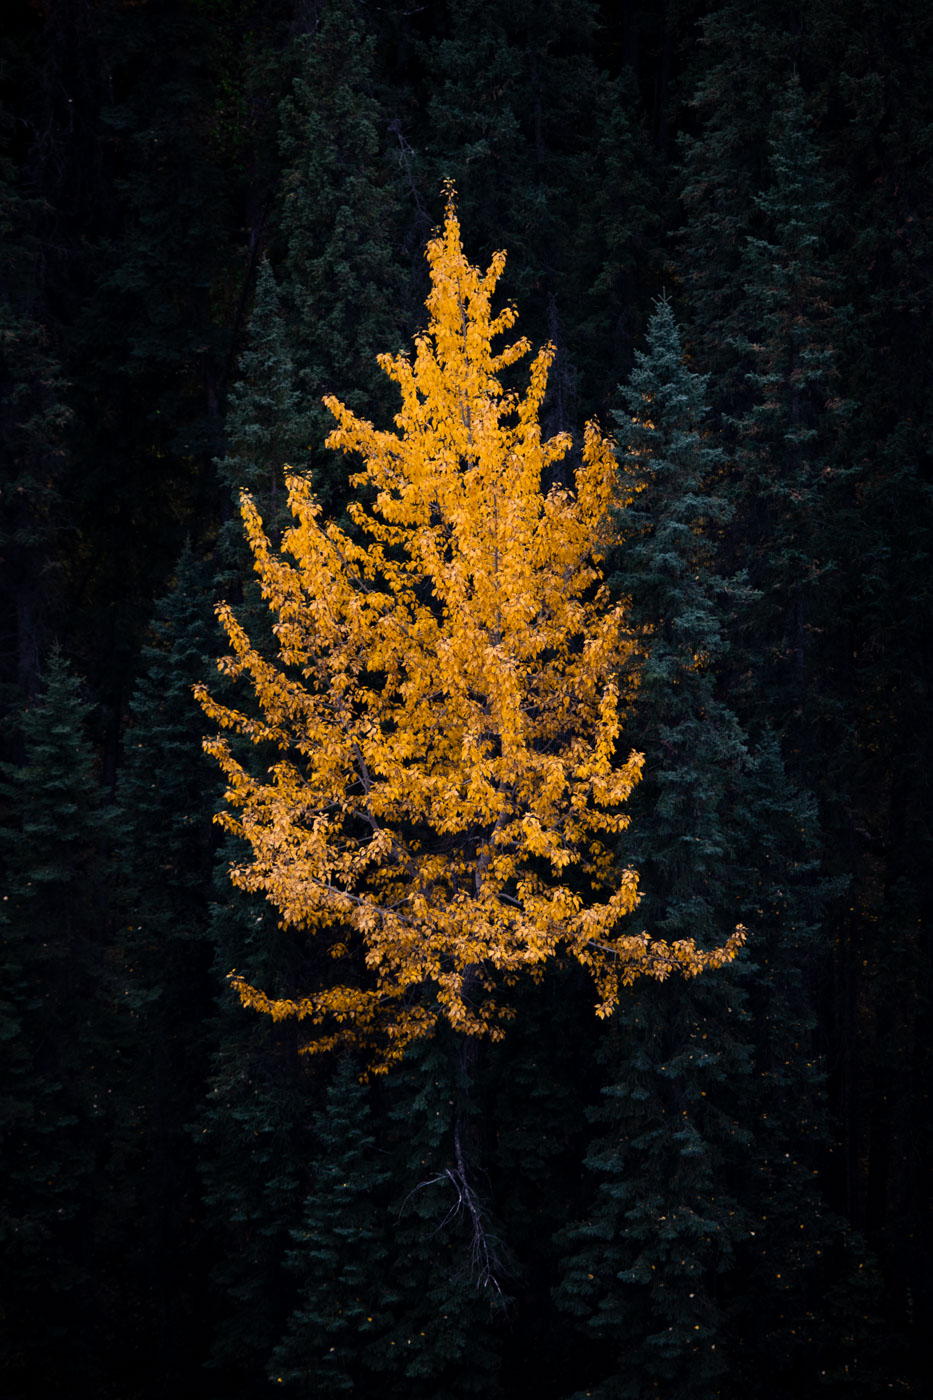 Golden Aspen with falling leaves surrounded by pine trees